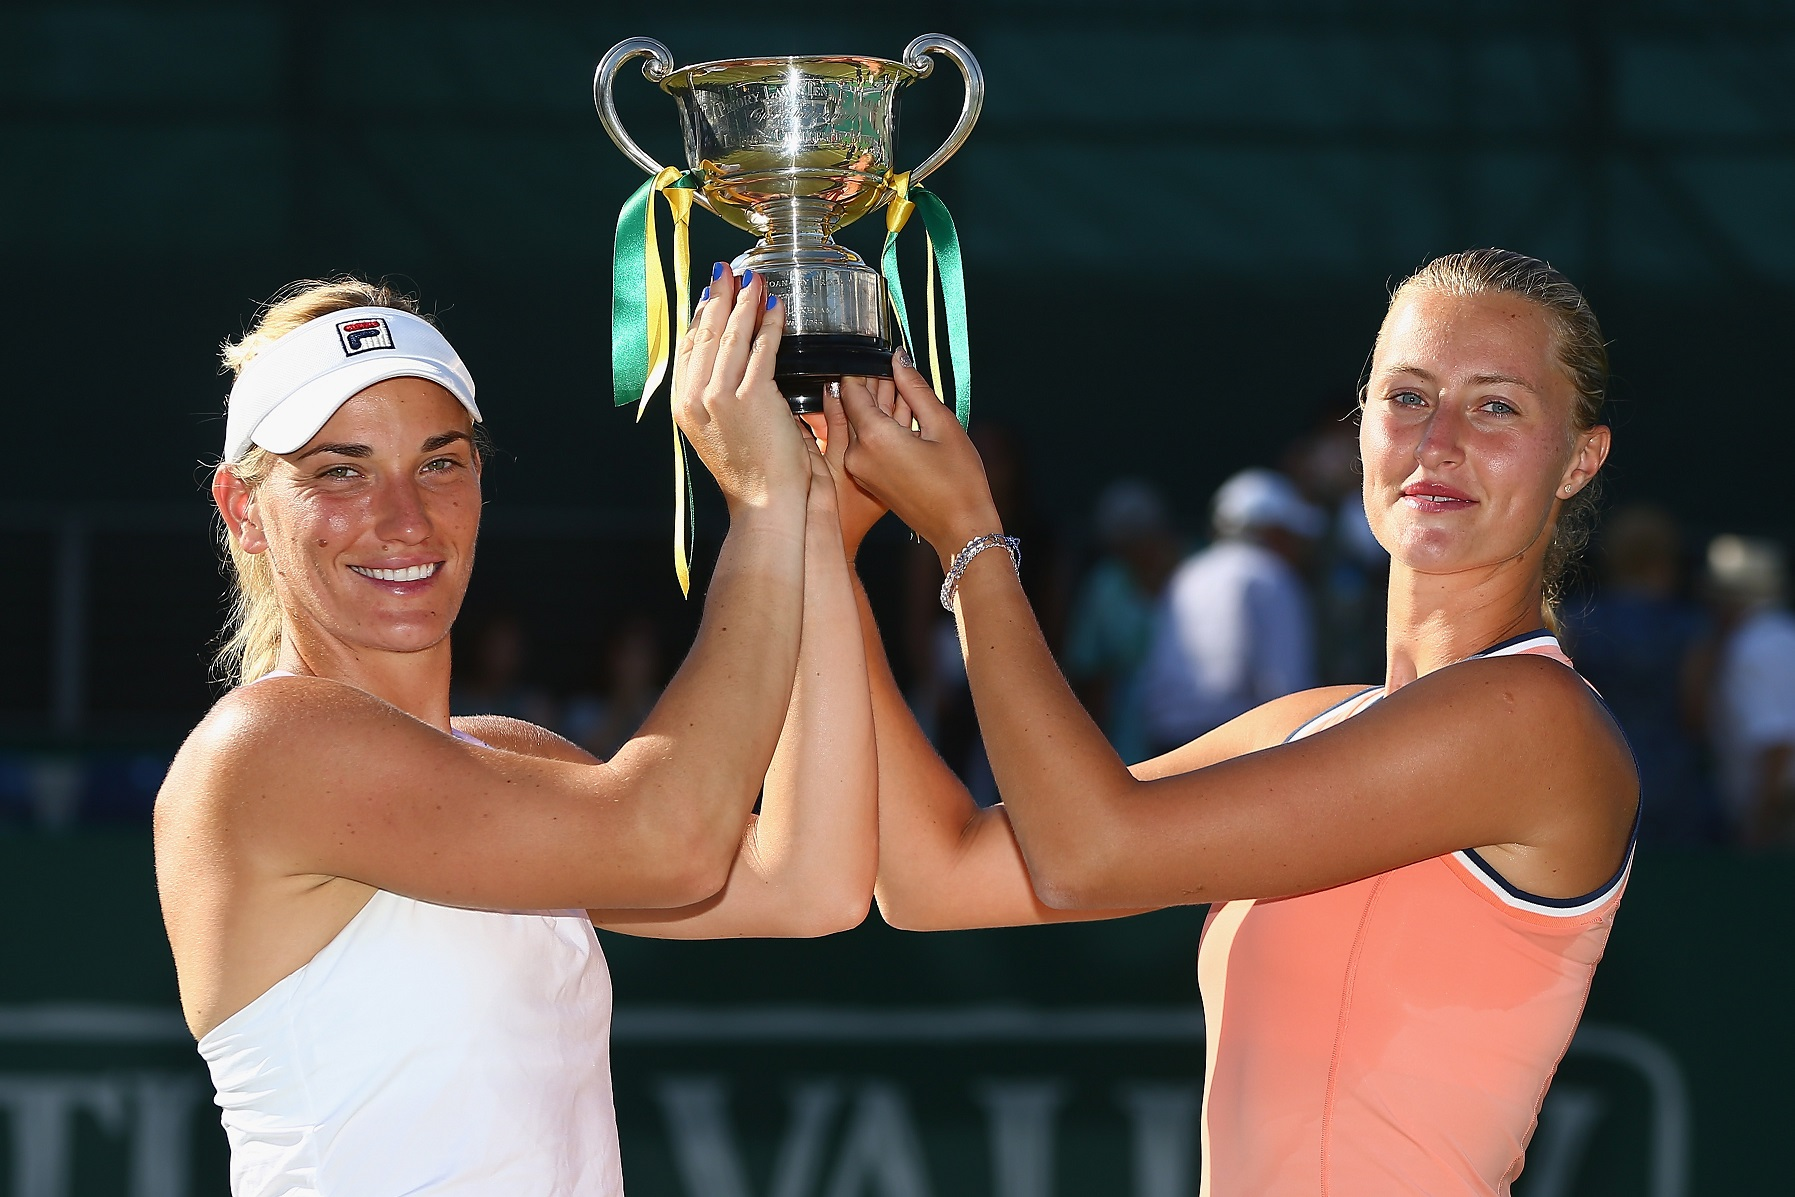 Imea Babos of Hungary and Kristina Mladenovic of France pose with the Trophy